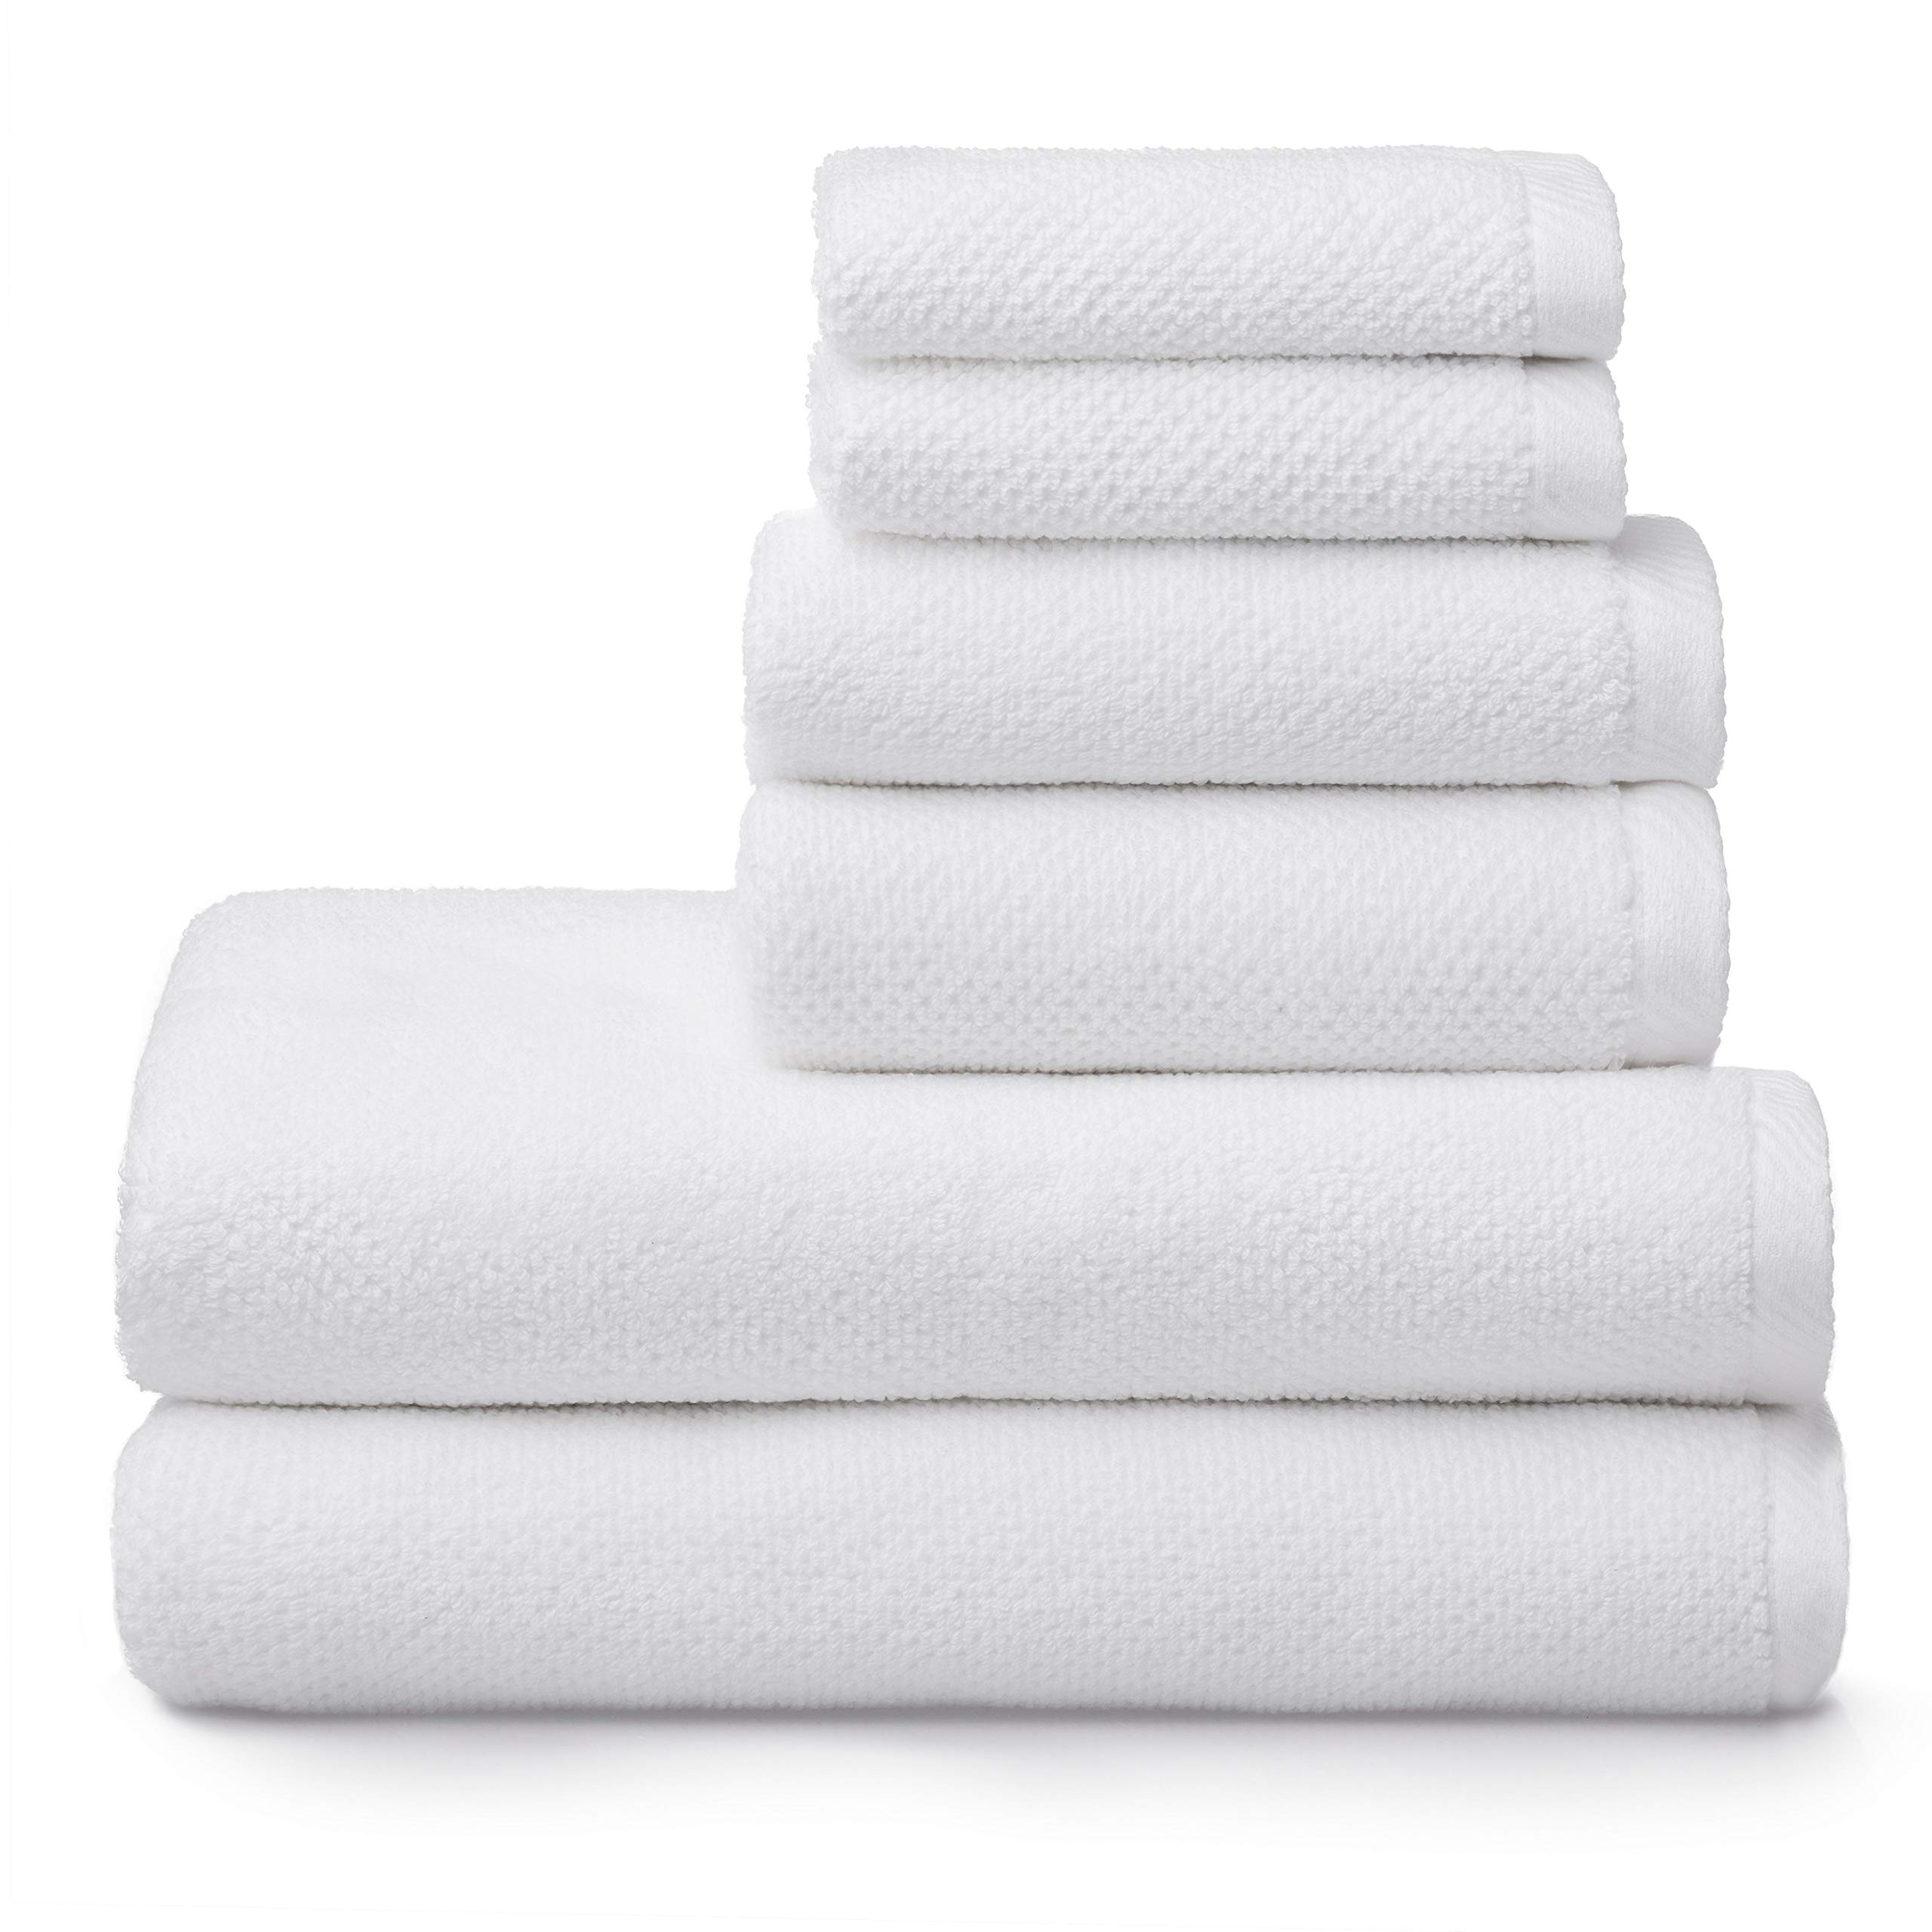 Welhome Franklin 100% Cotton Textured Towel (White) - Set of 6 - Highly Absorbent - Combed Cotton - Durable - Low Lint - 600 GSM - Machine Washable : 2 Bath Towels - 2 Hand Towels - 2 Wash Towels